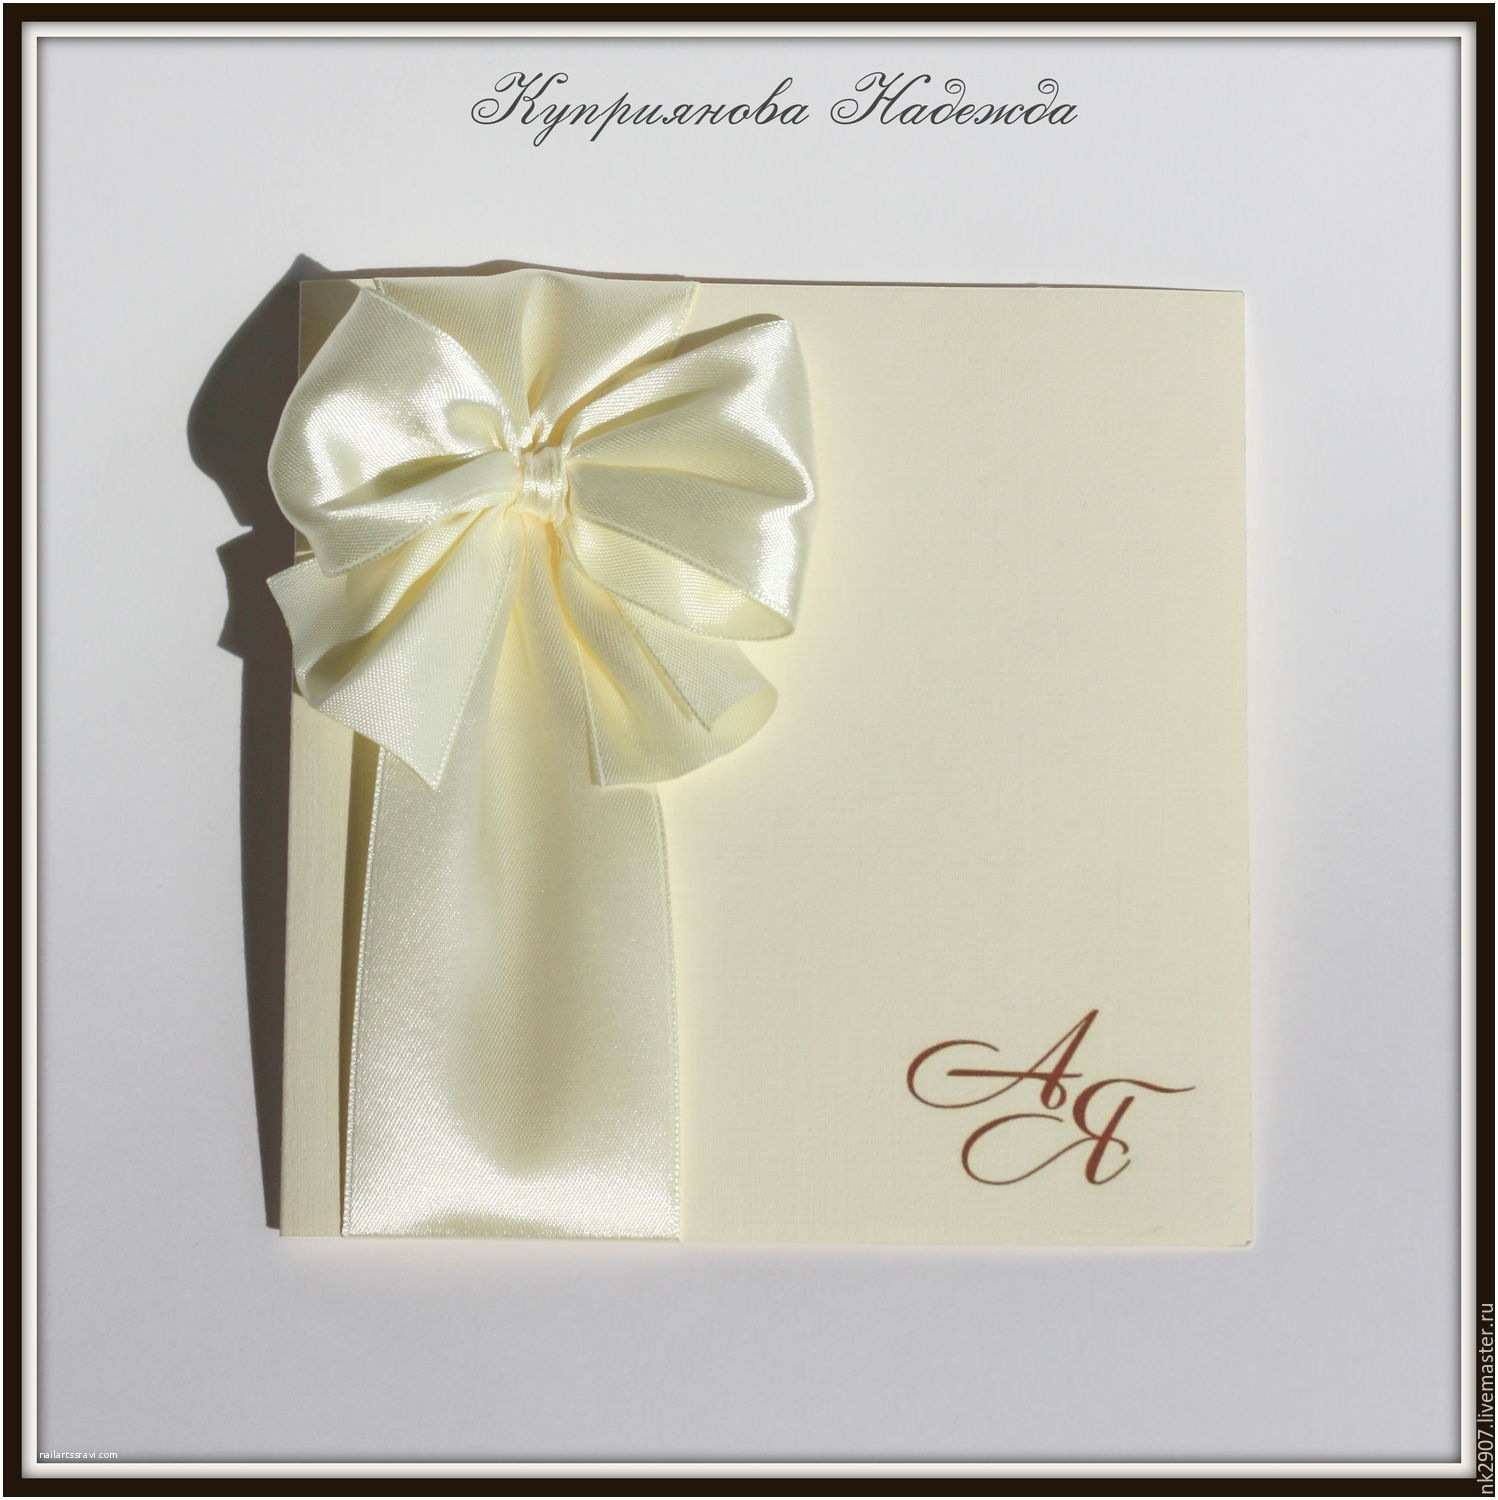 Wedding Invitation Accessories Buy Wedding Invitation with Bow and Initials Line Shop